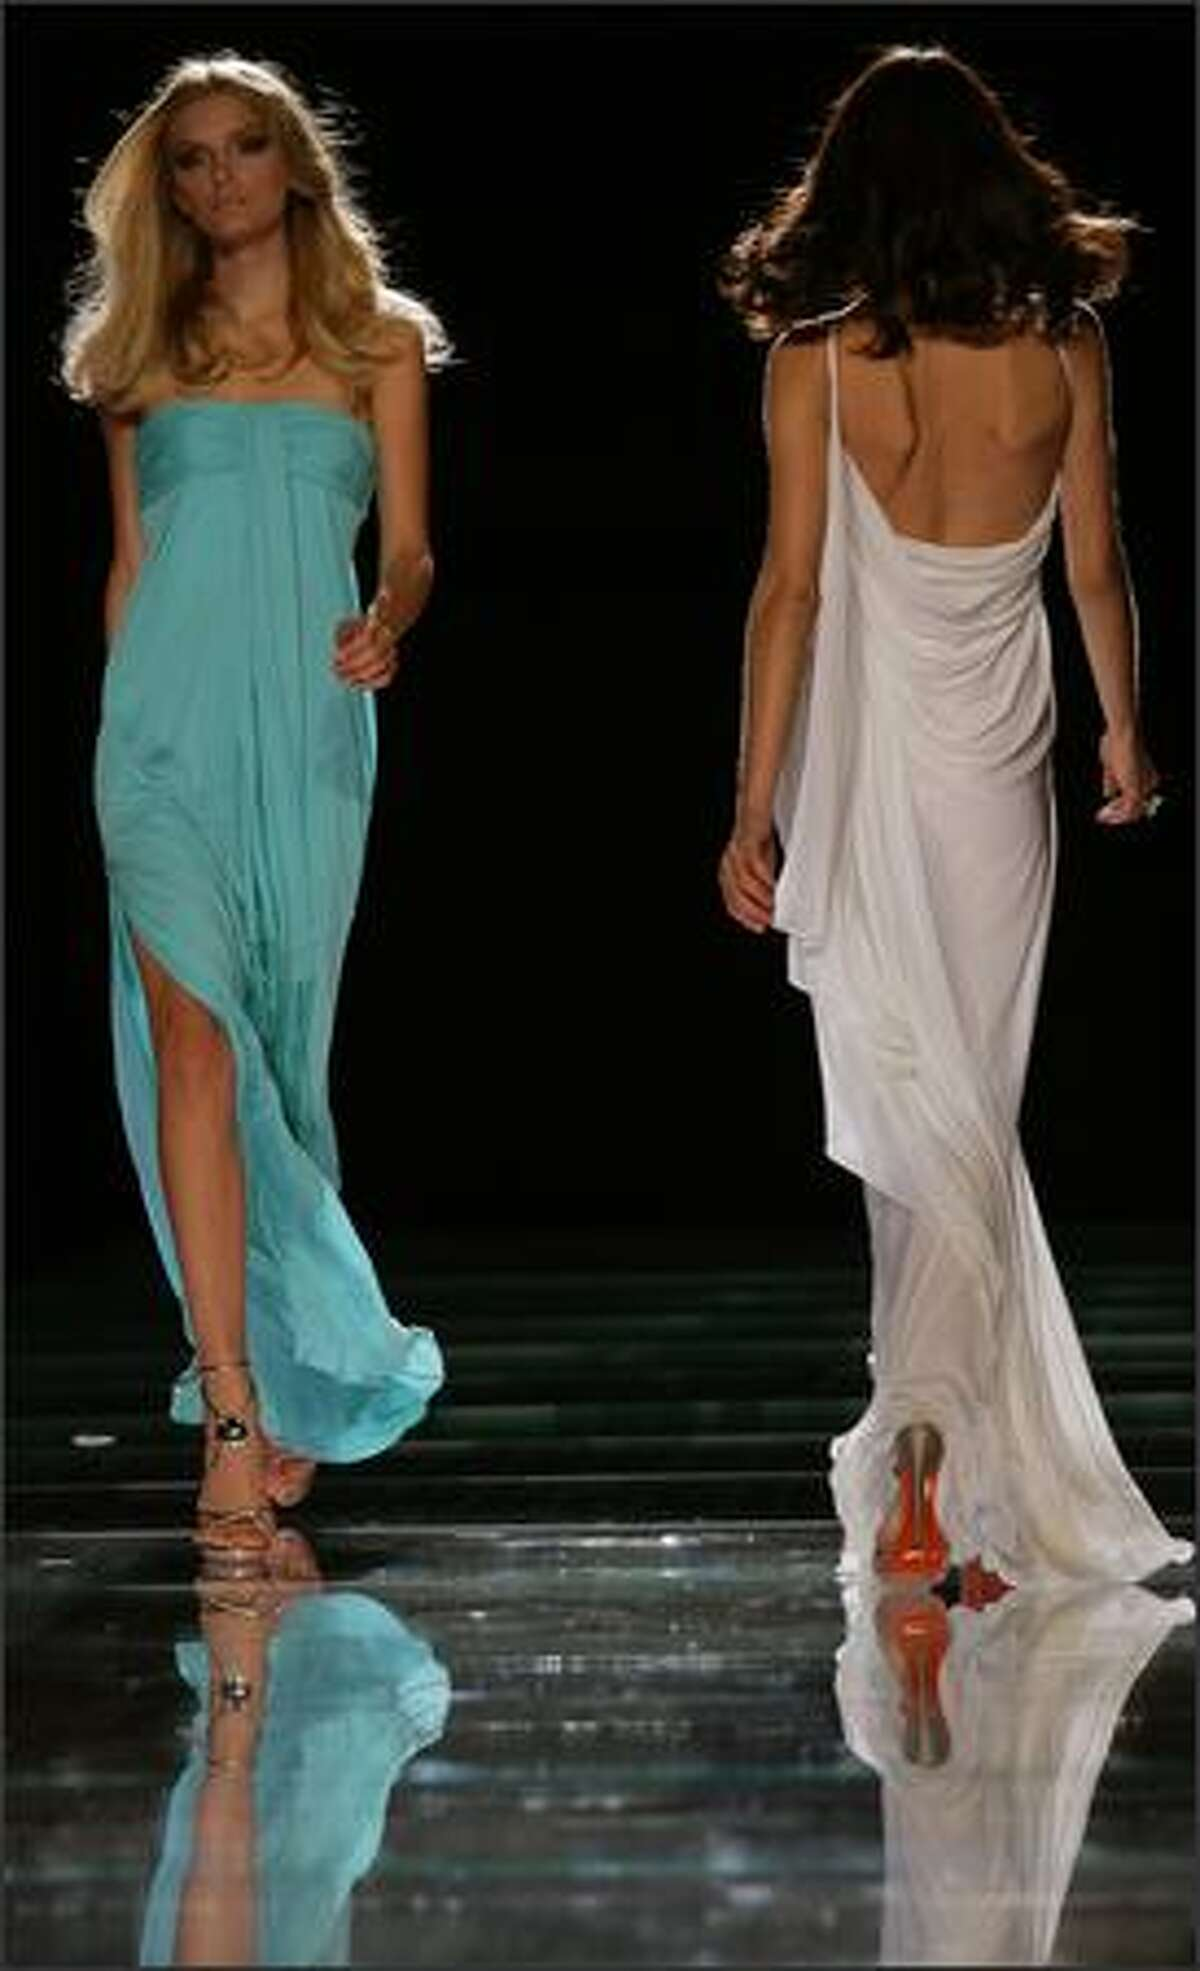 Models present creations by Italian designer Donatella Versace for Italian fashion house Gianni Versace during the Spring/Summer 2008 collections of the Milan ready-to-wear fashion shows.